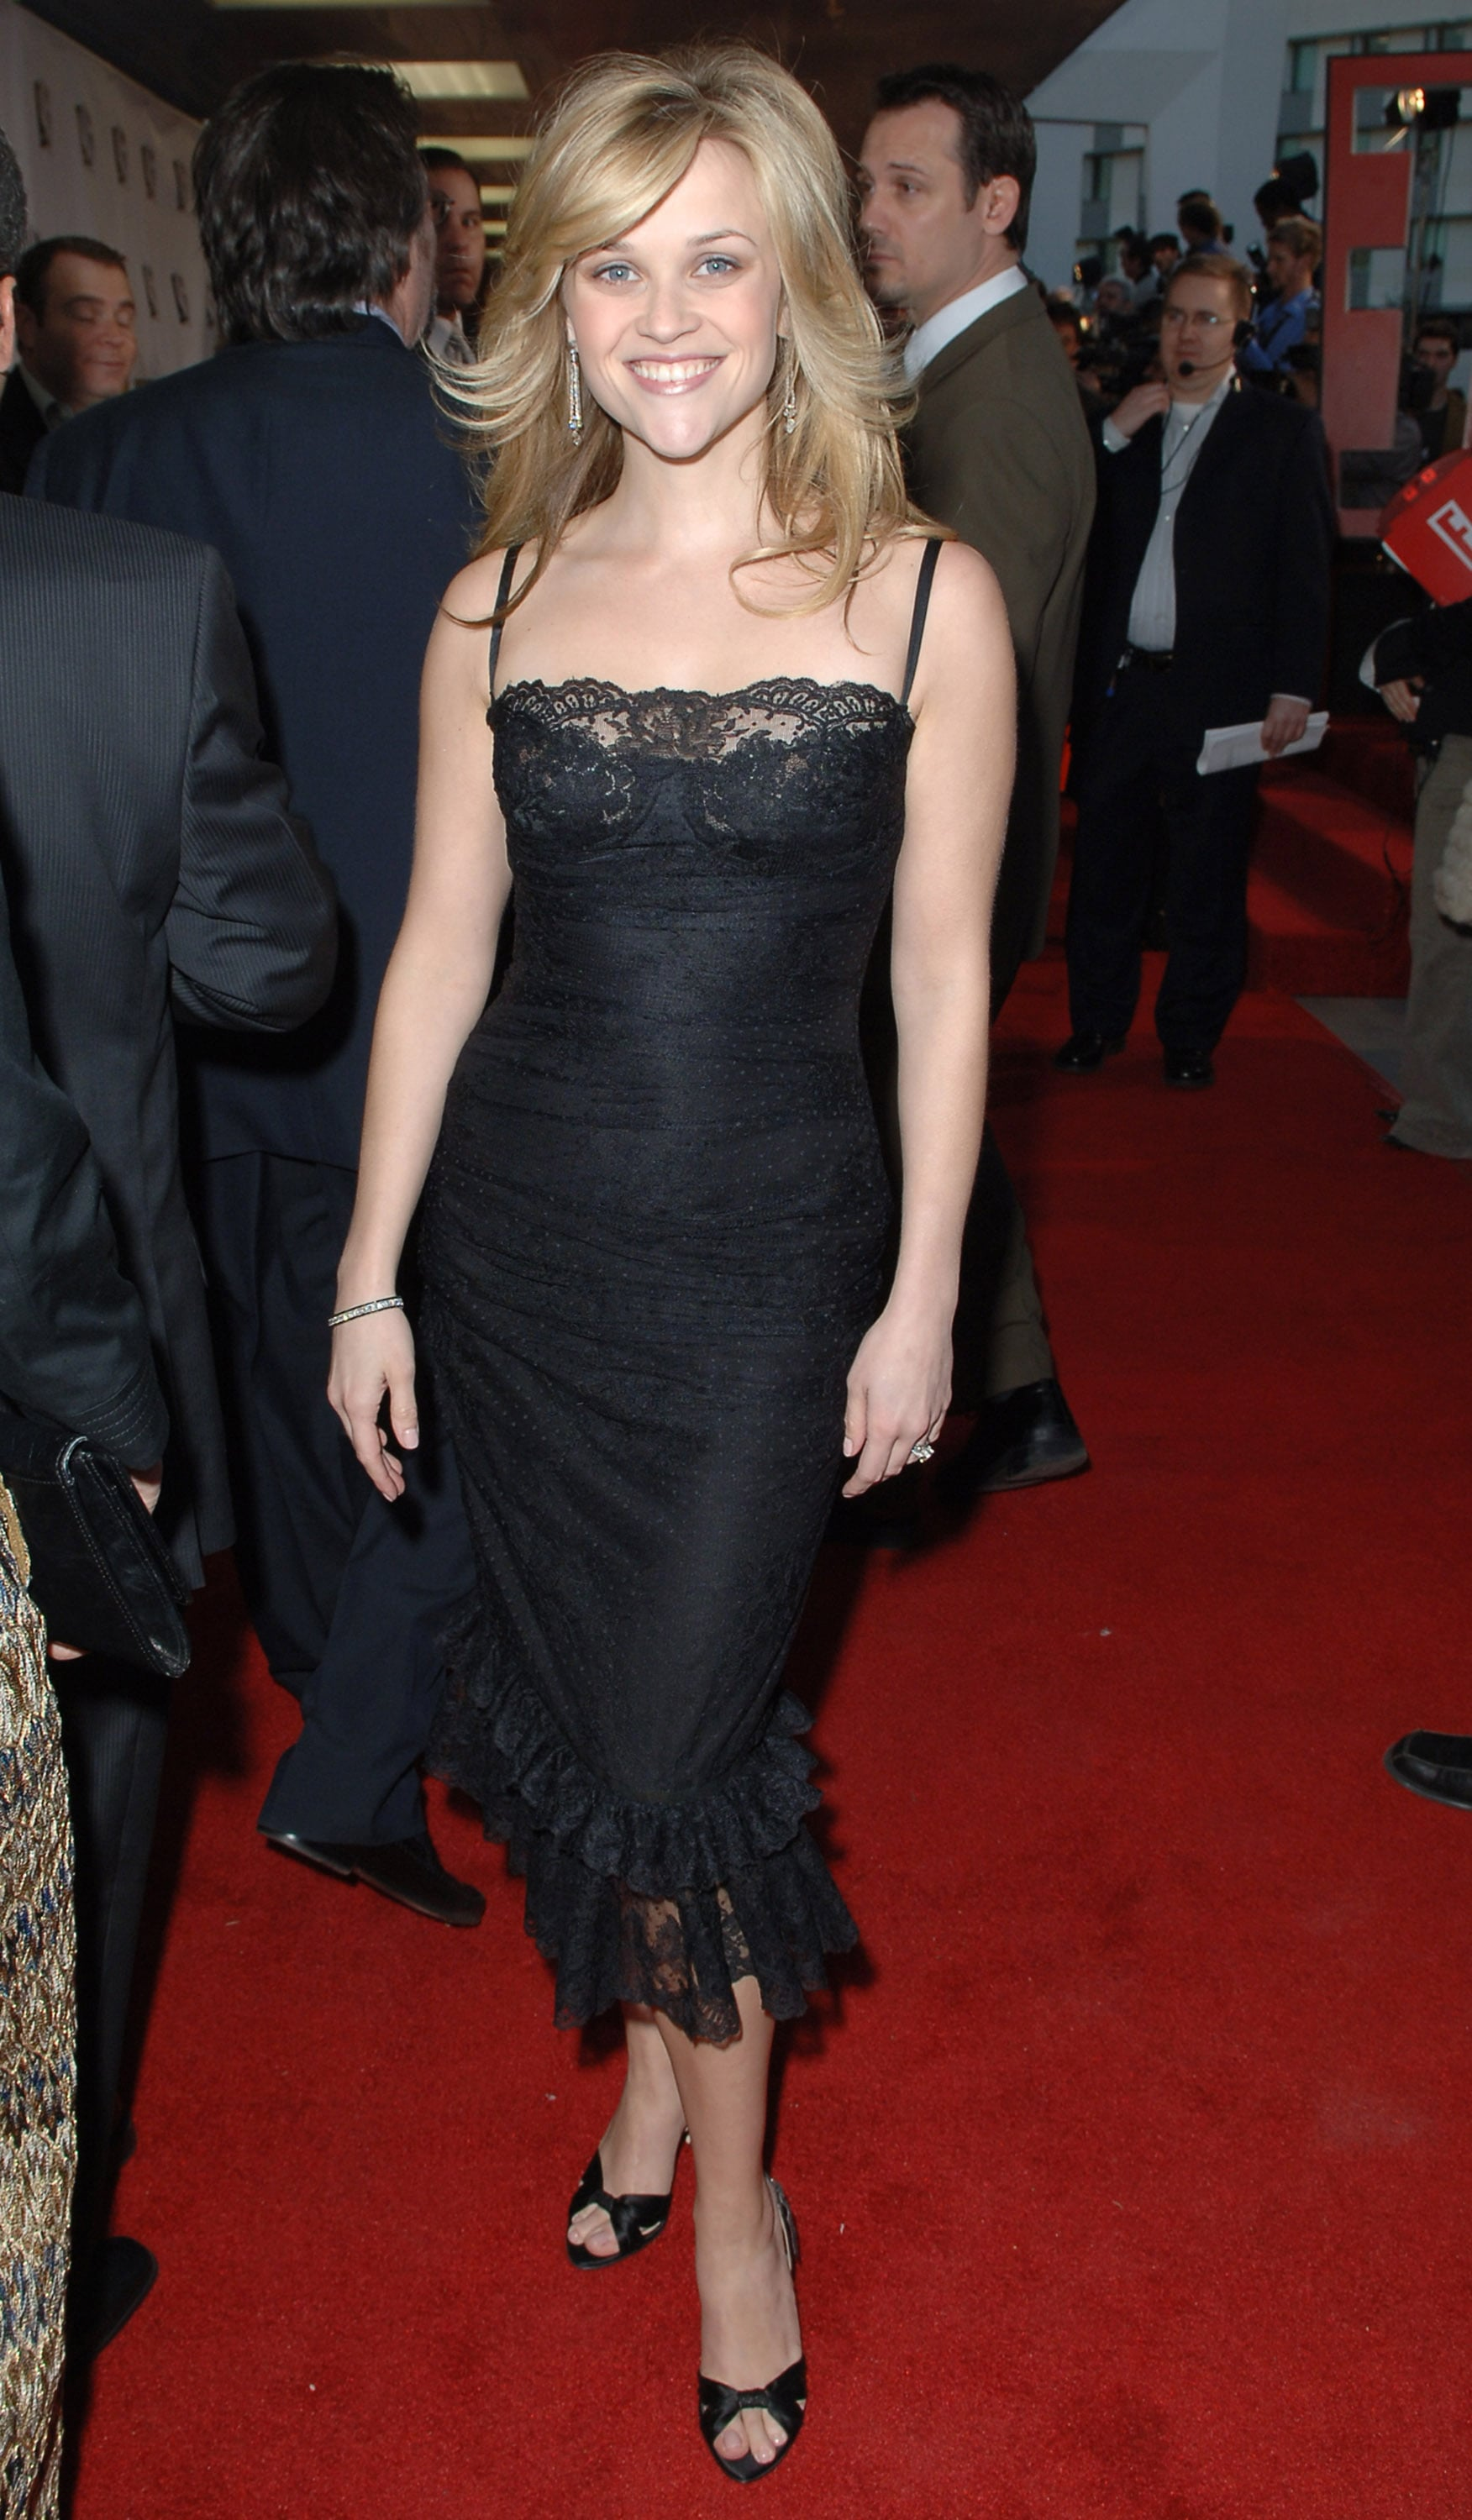 Reese Witherspoon in Black Lace Dress at 2006 Critics' Choice Awards